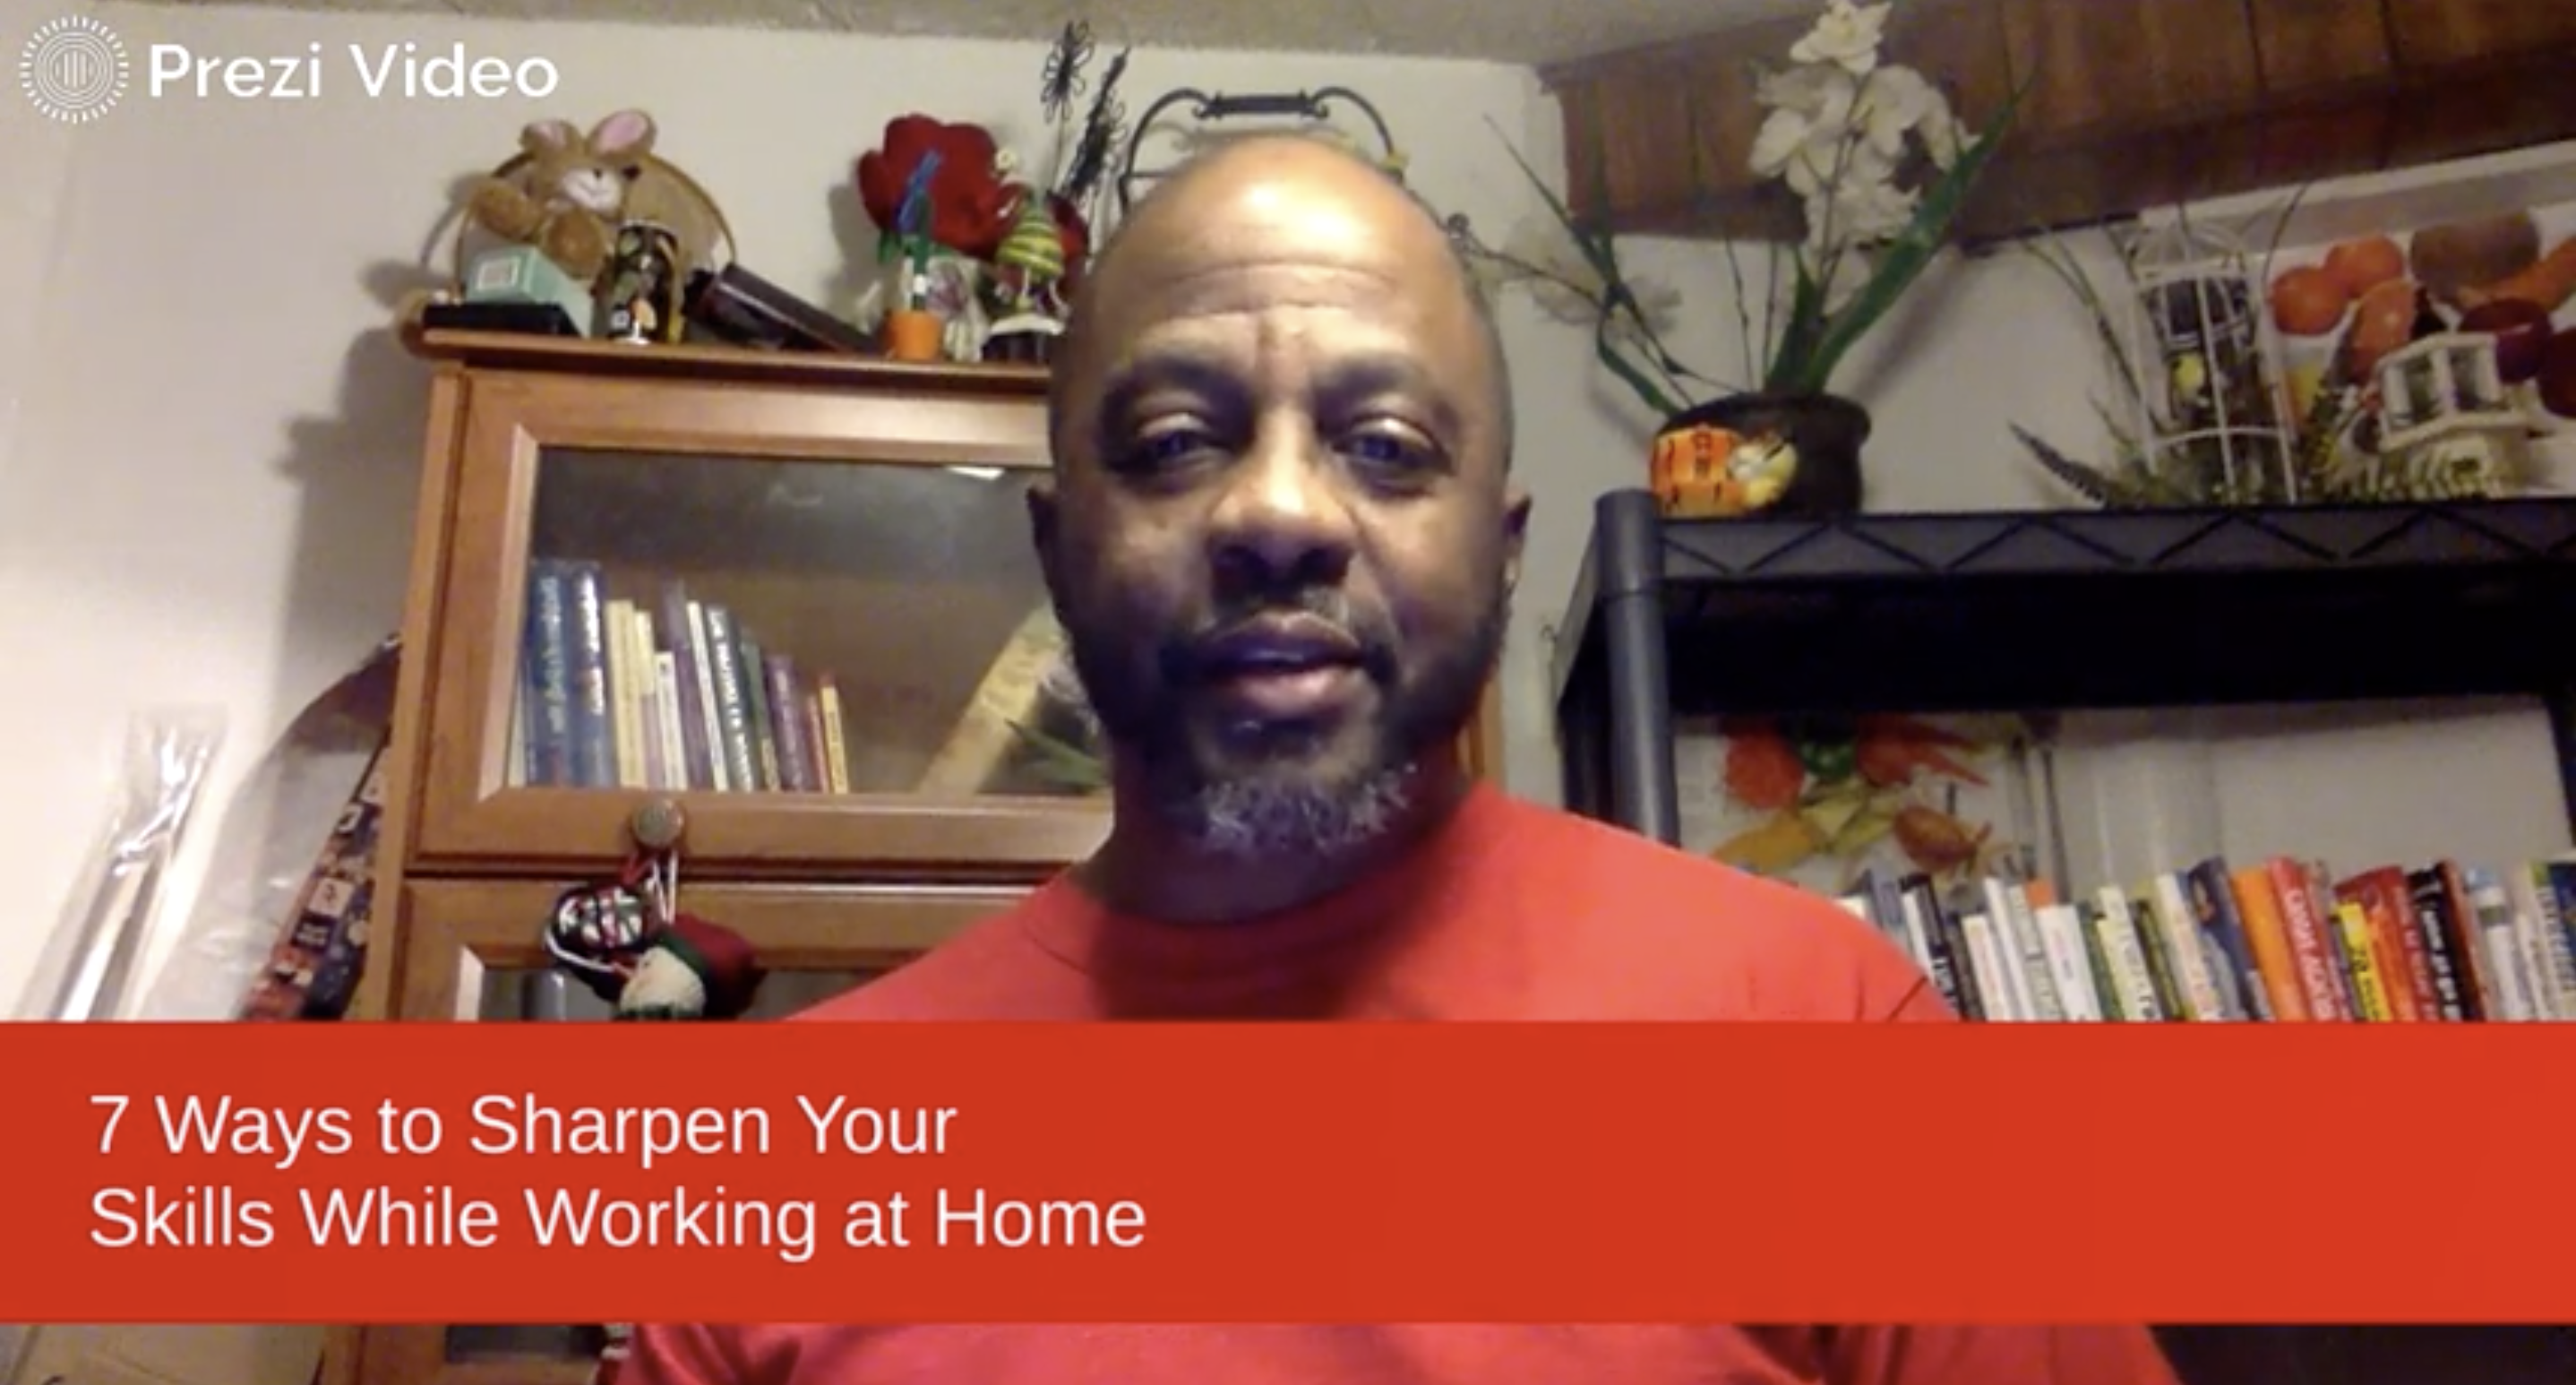 7 ways to sharpen your skills while working from home